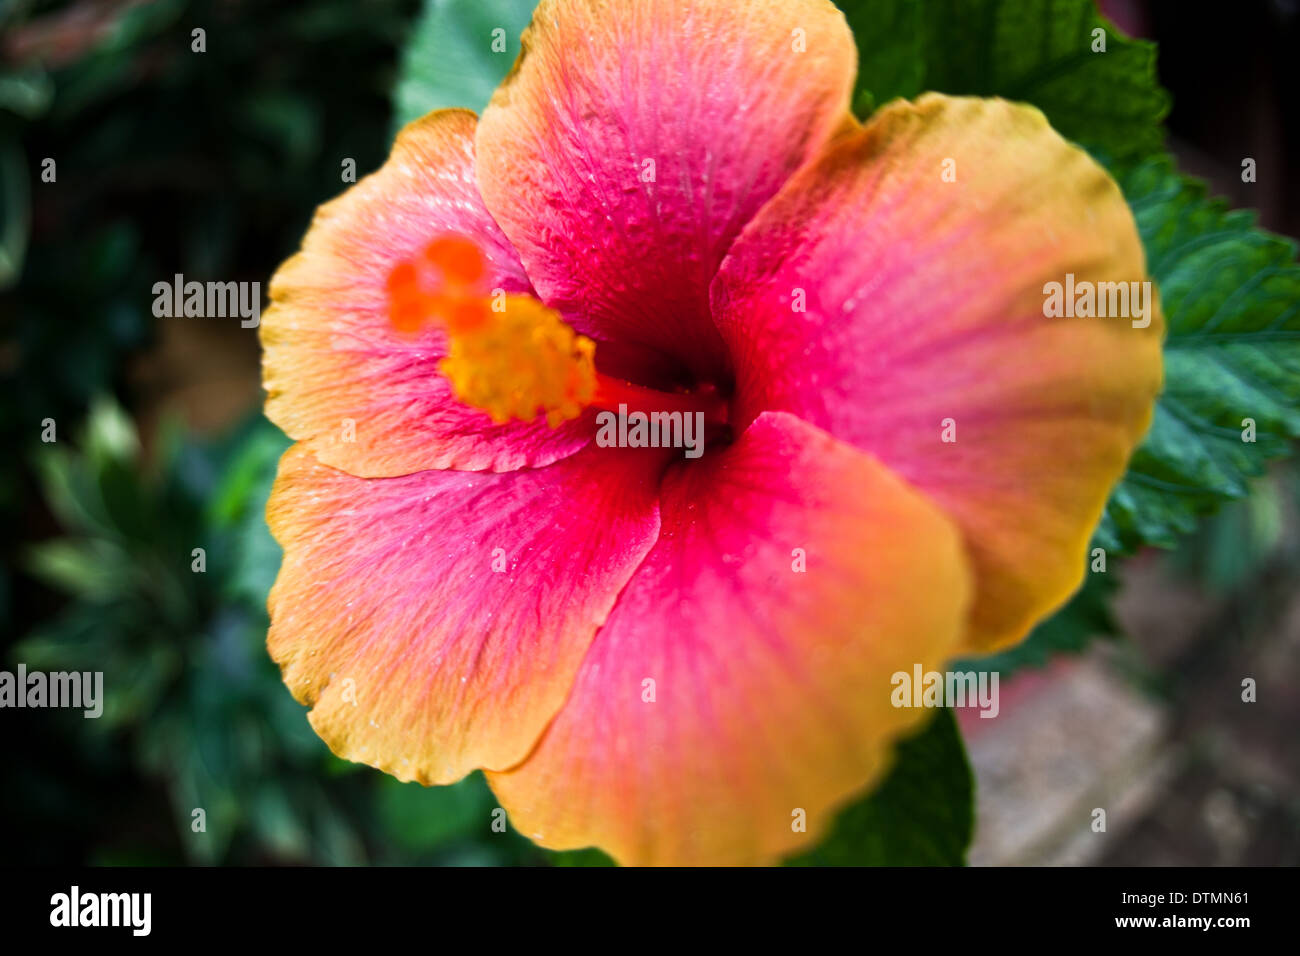 Hibiscus flower tropical pink and yellow island flower stock photo hibiscus flower tropical pink and yellow island flower izmirmasajfo